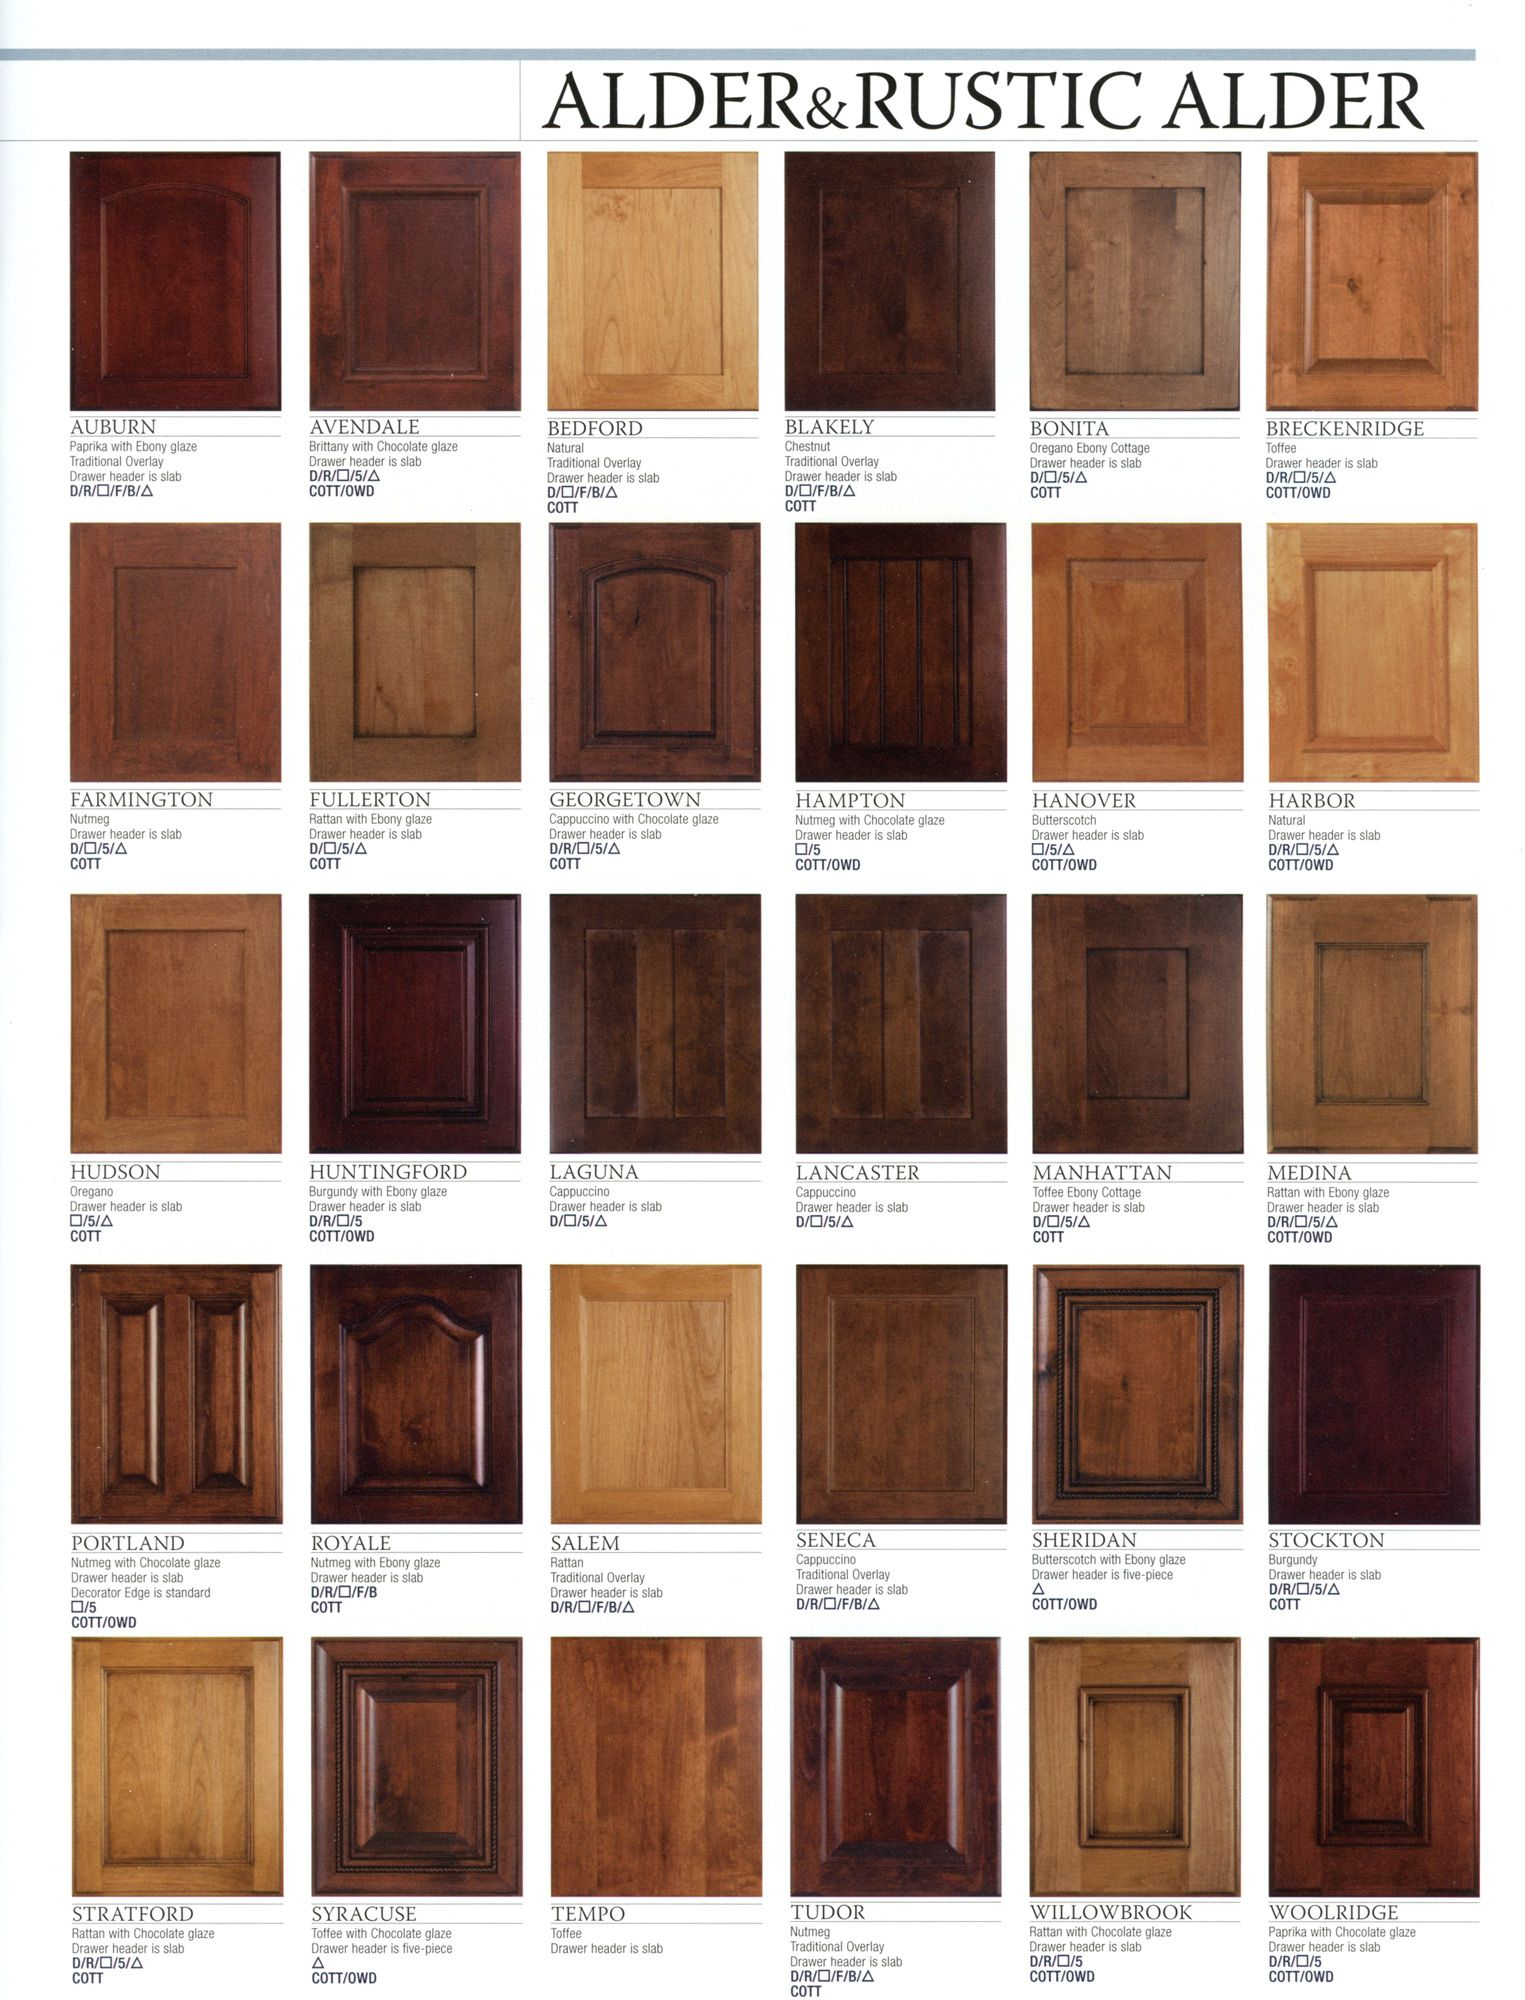 Exceptionnel Cabinets Ideas Category For Plan How To Stain Alder Wood Cabinets With  Label Pictures Of Alder Wood Cabinets ;Clear Alder Wood Cabinets.